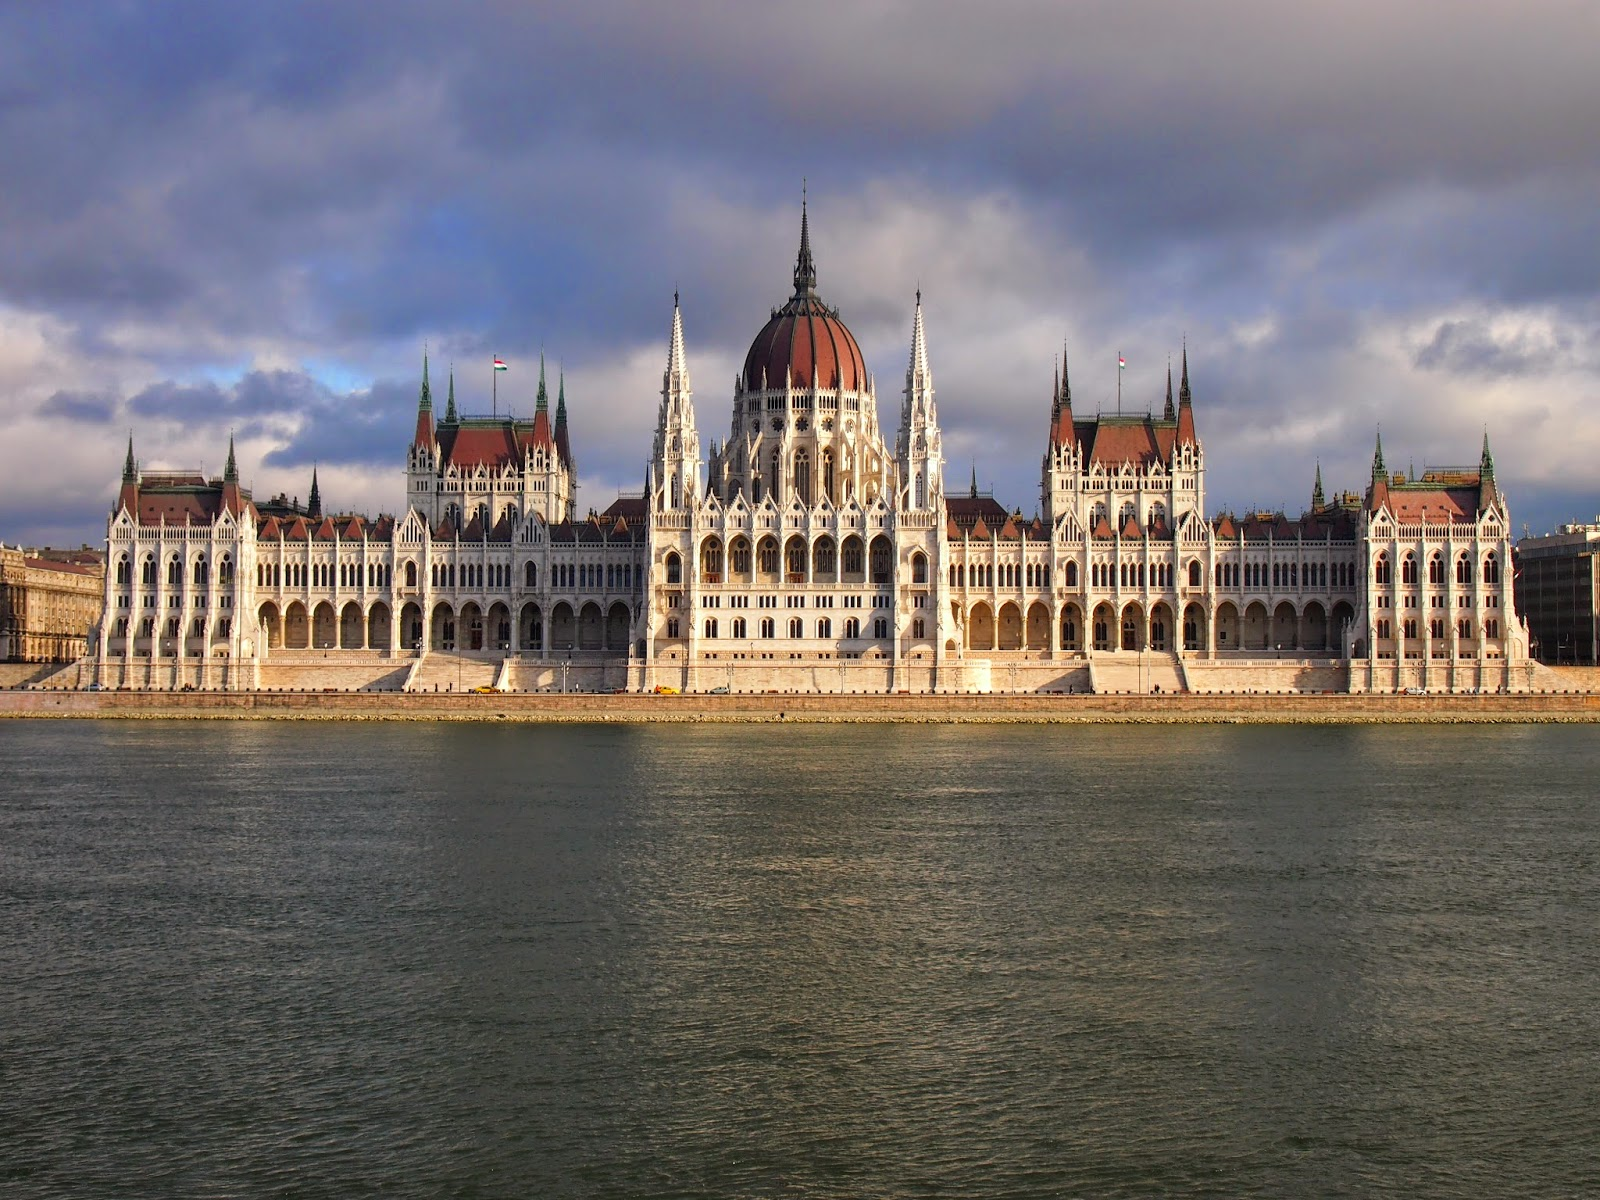 The Budapest Parlament